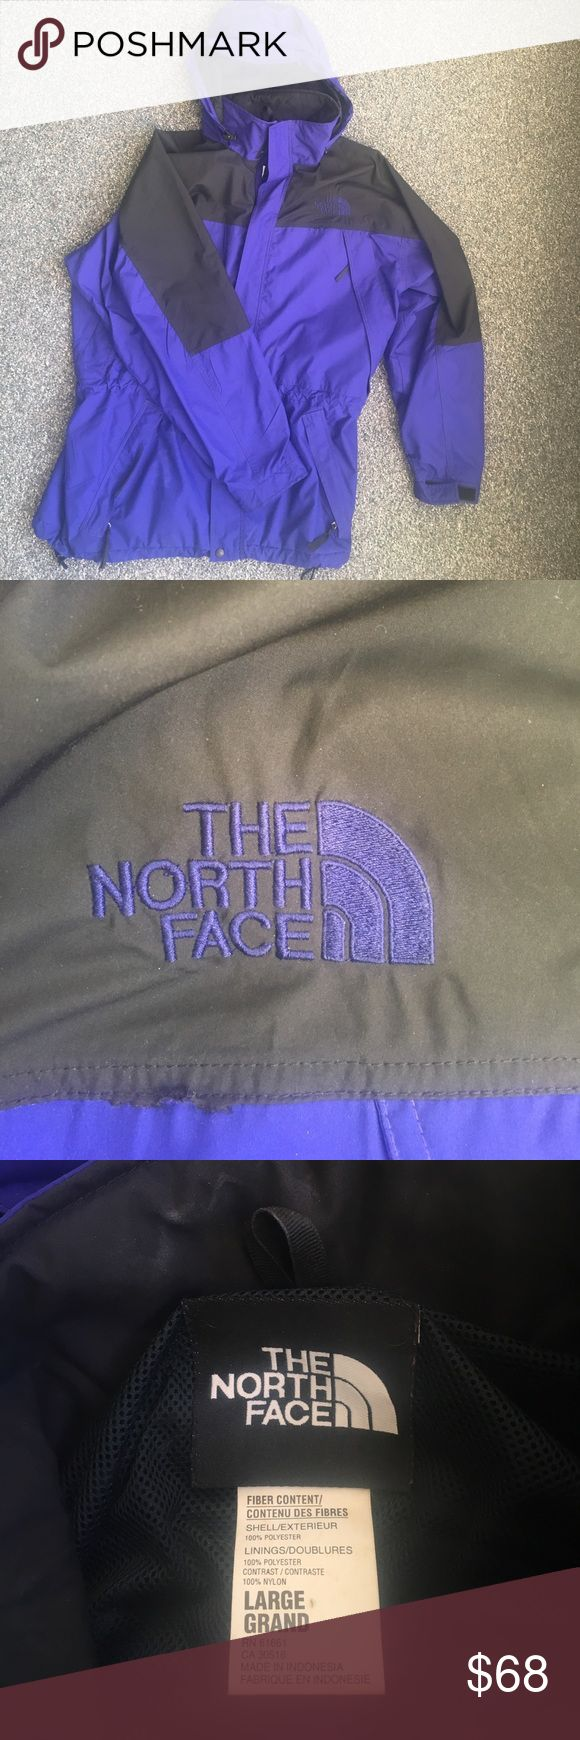 The North Face Wind Breaker Rarely used North Face windbreaker Size Large. The hood can be stored in a pouch behind the colar. Great bonus for when you want to hide your dime bags! The North Face Jackets & Coats Lightweight & Shirt Jackets